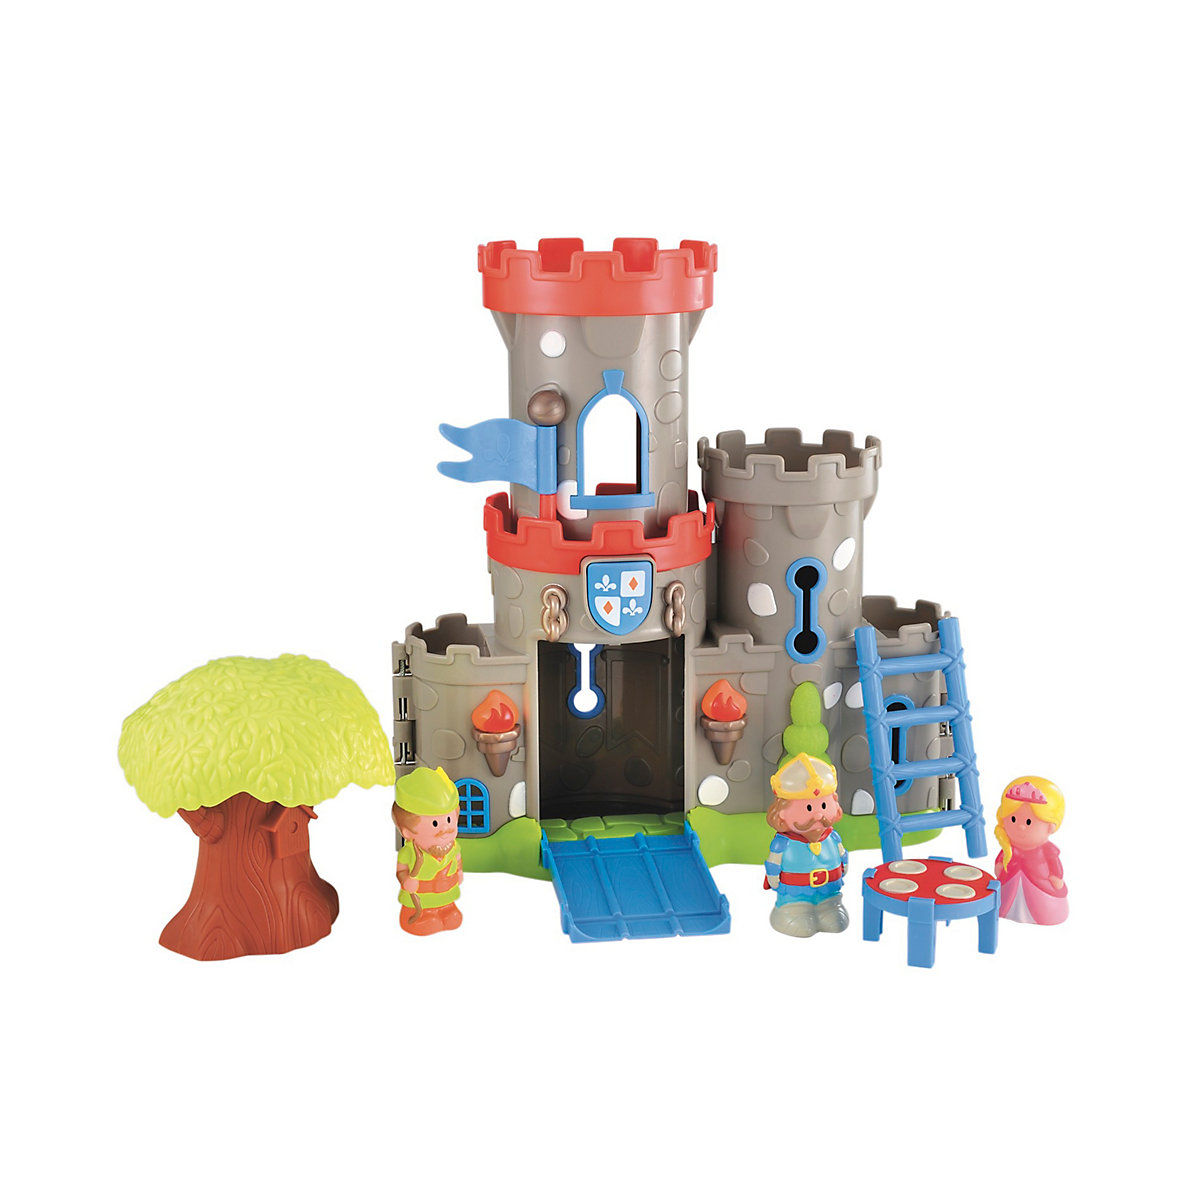 New HappyLand Boys and Girls Sherwood Castle Playset Toy From 18 months